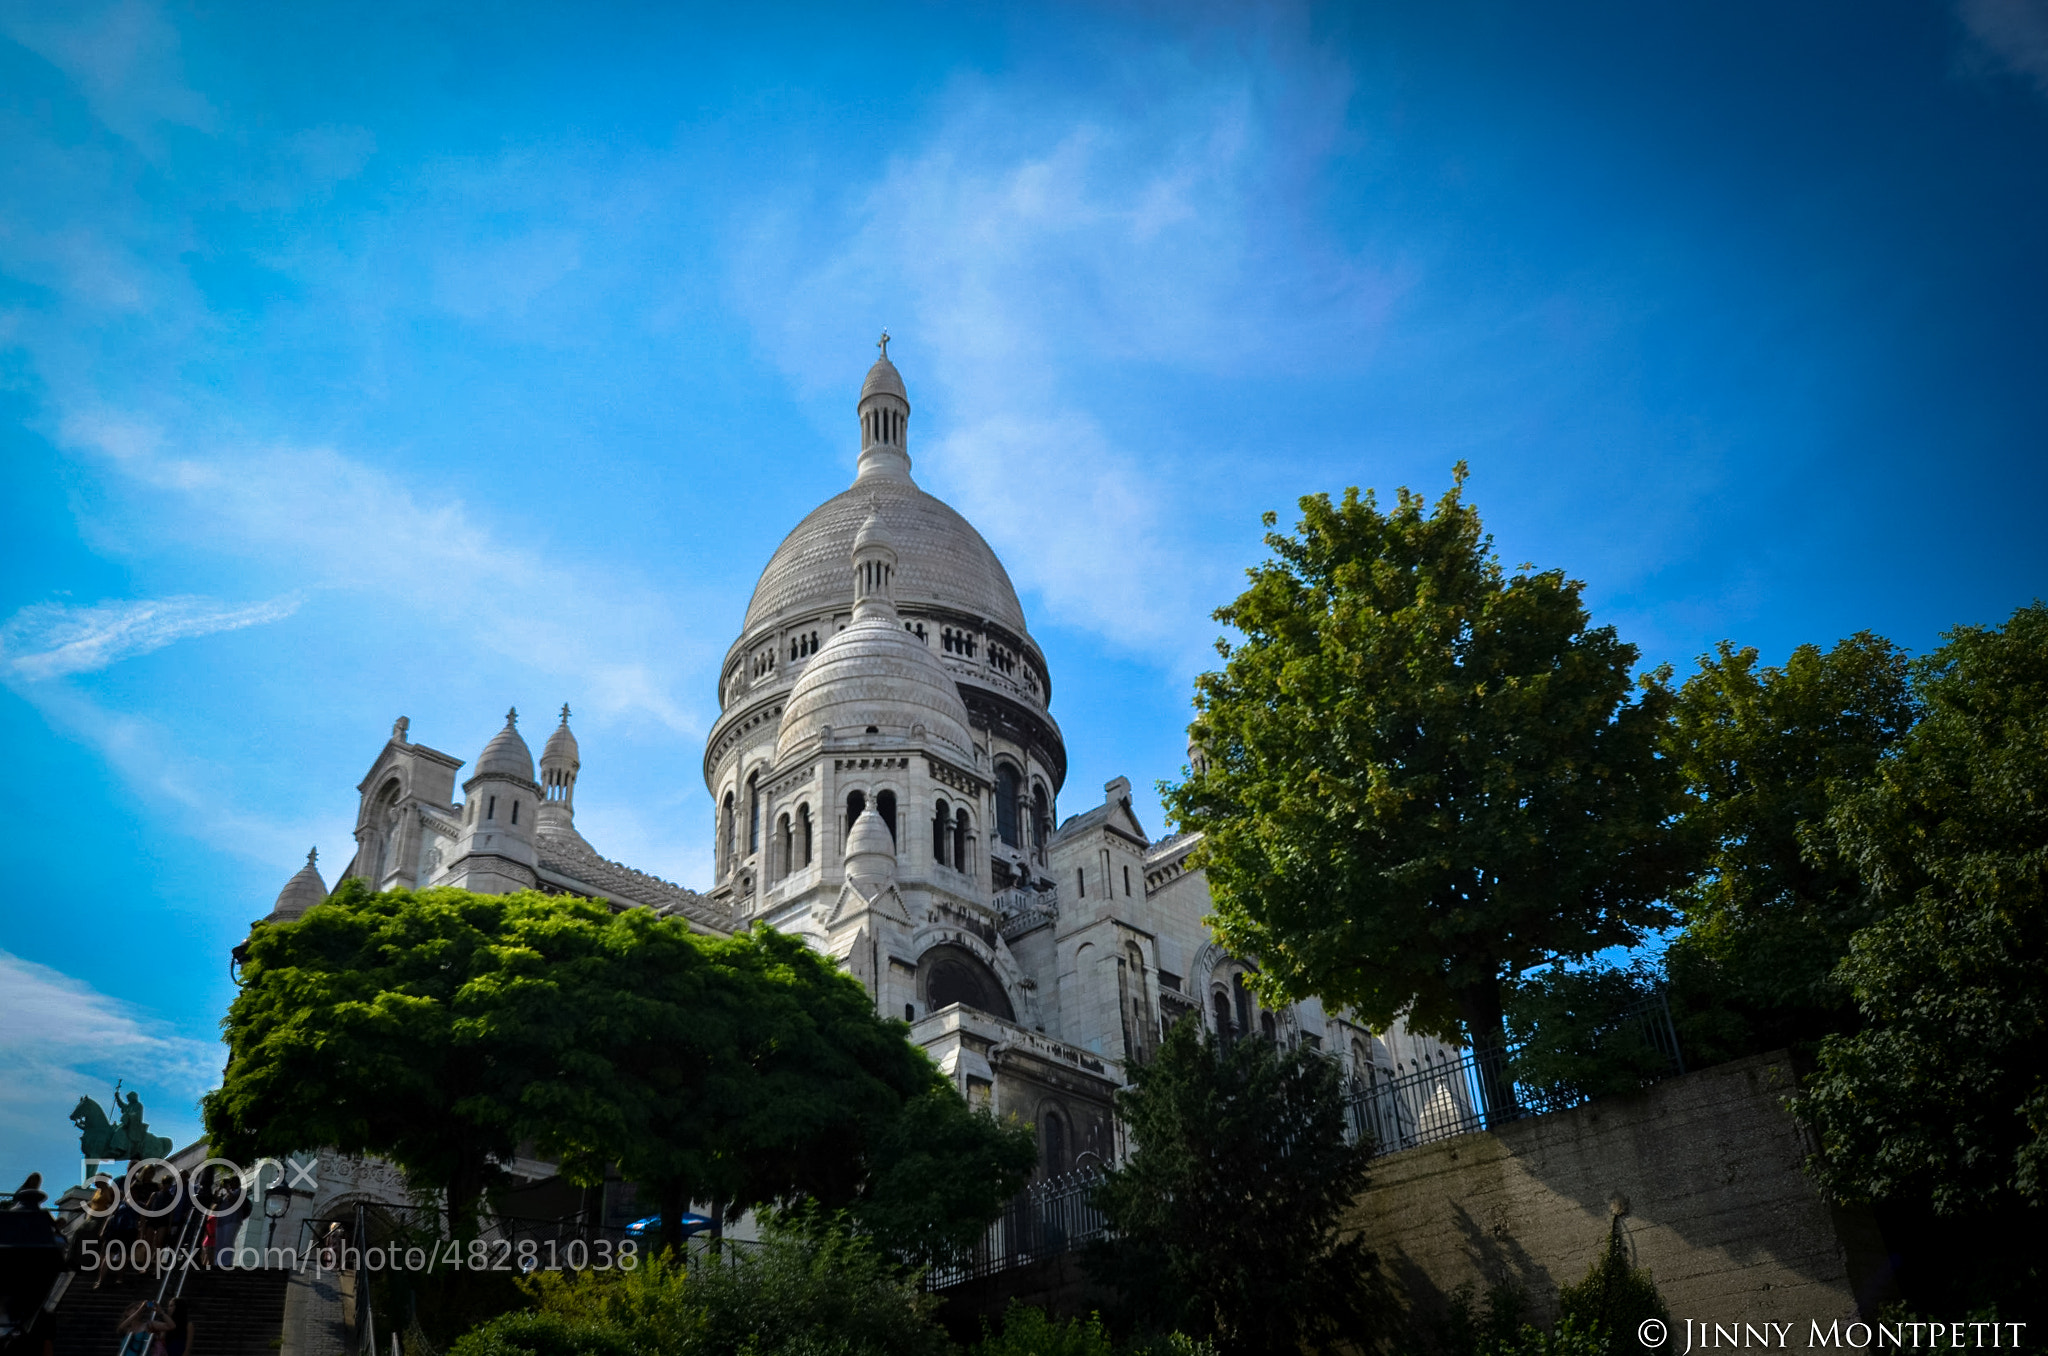 Photograph Sacré-Coeur by Jinny Montpetit on 500px